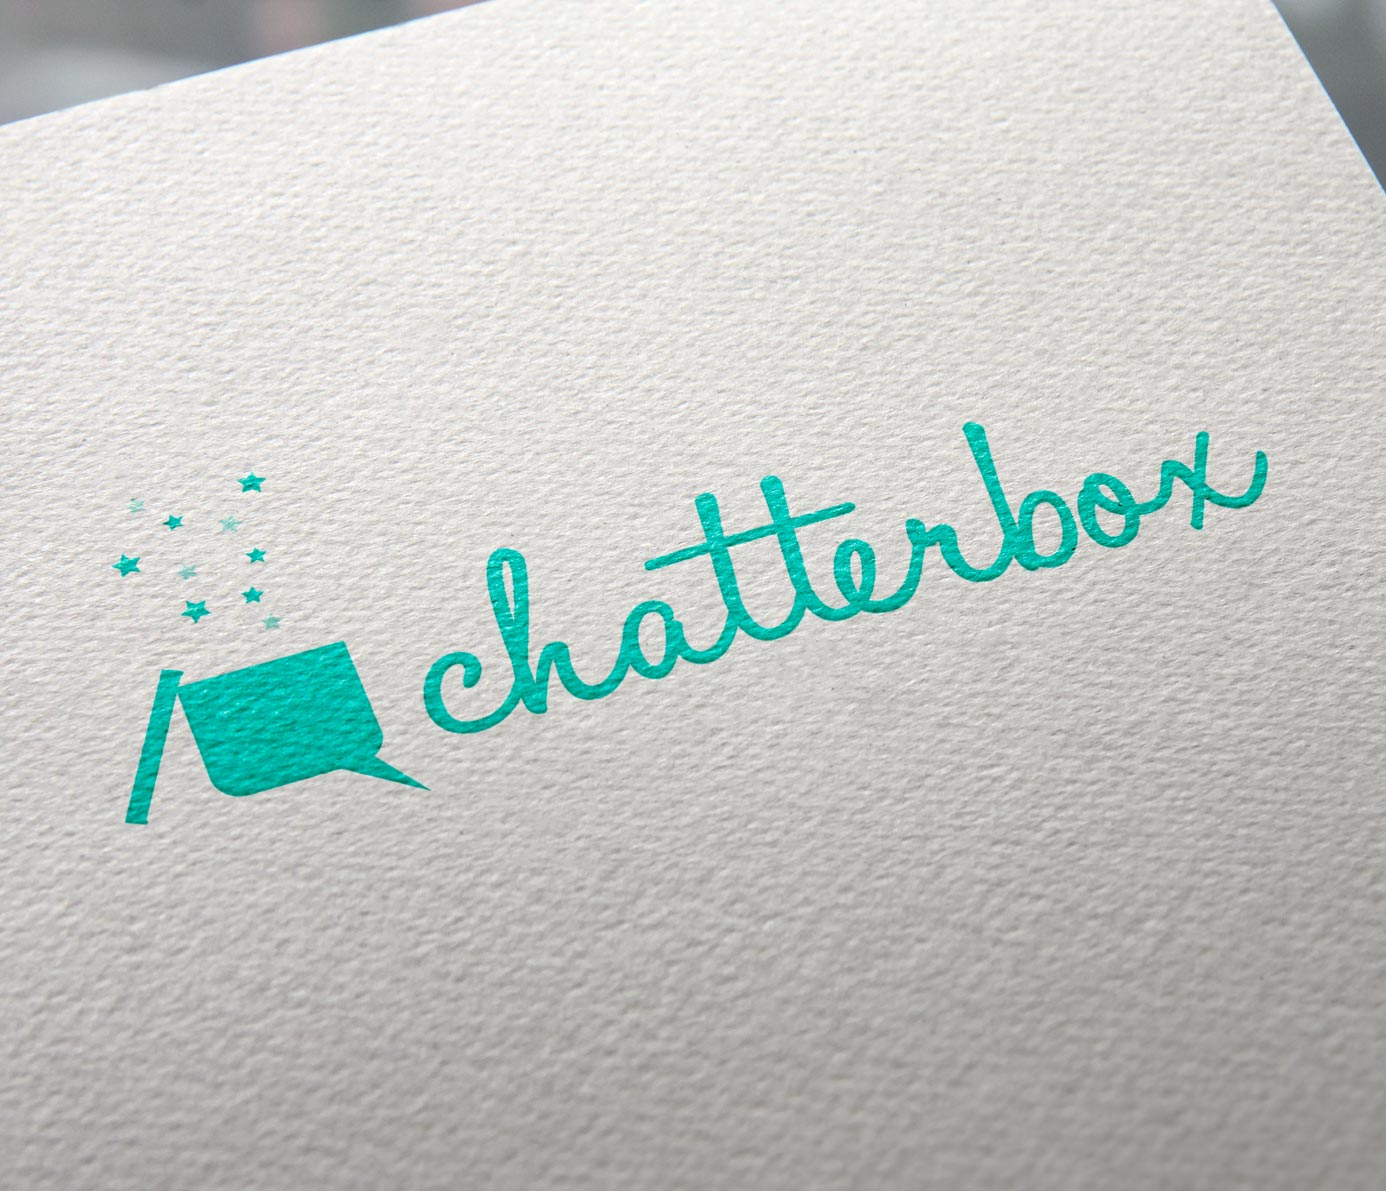 Chatterbox_3